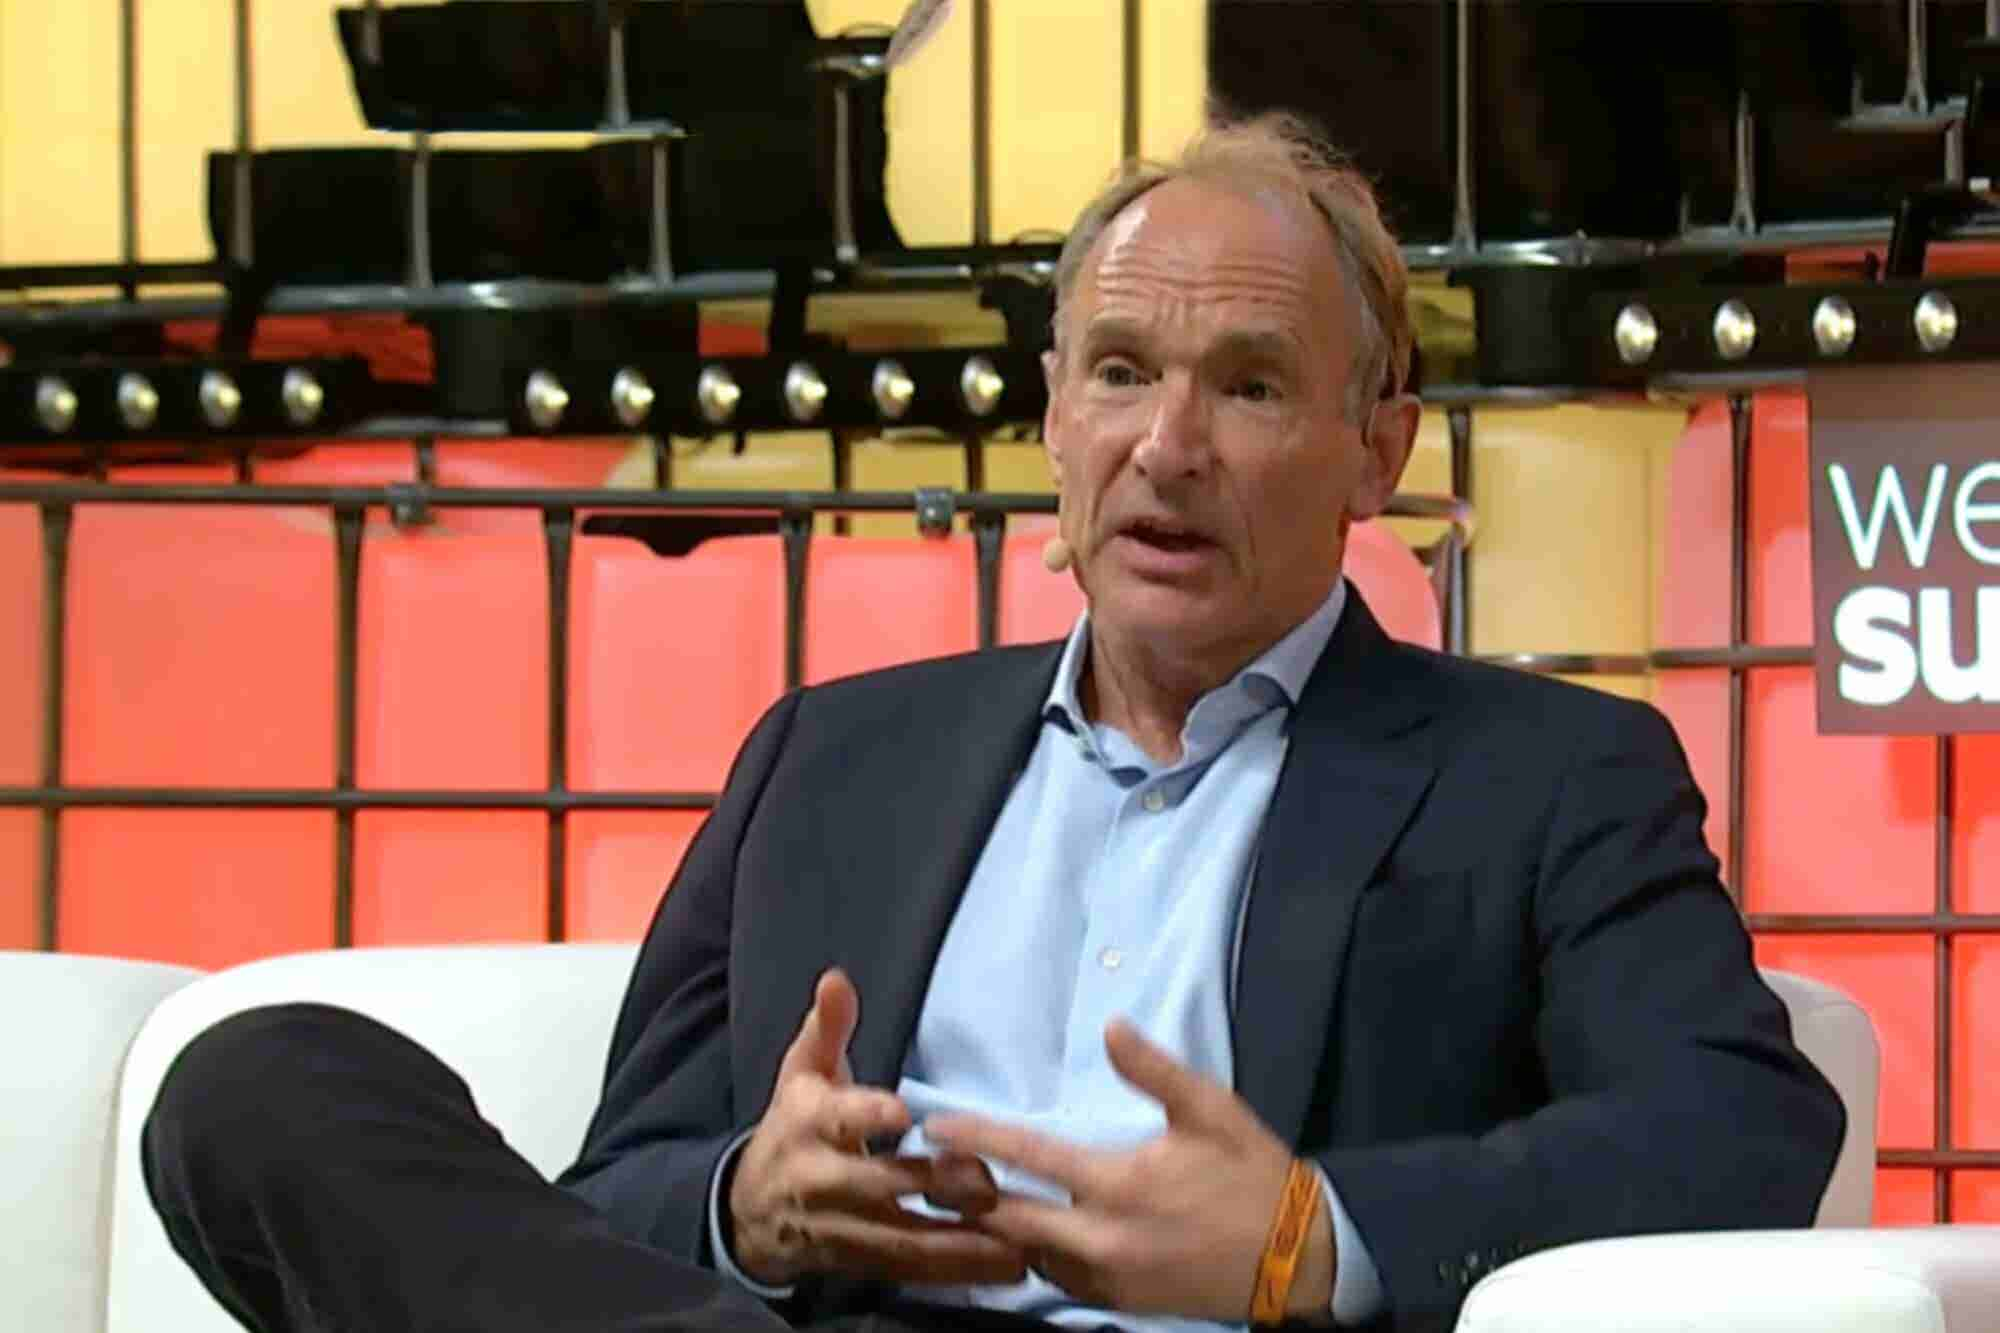 Tim Berners-Lee Pushes For 'Contract' to Protect the Web